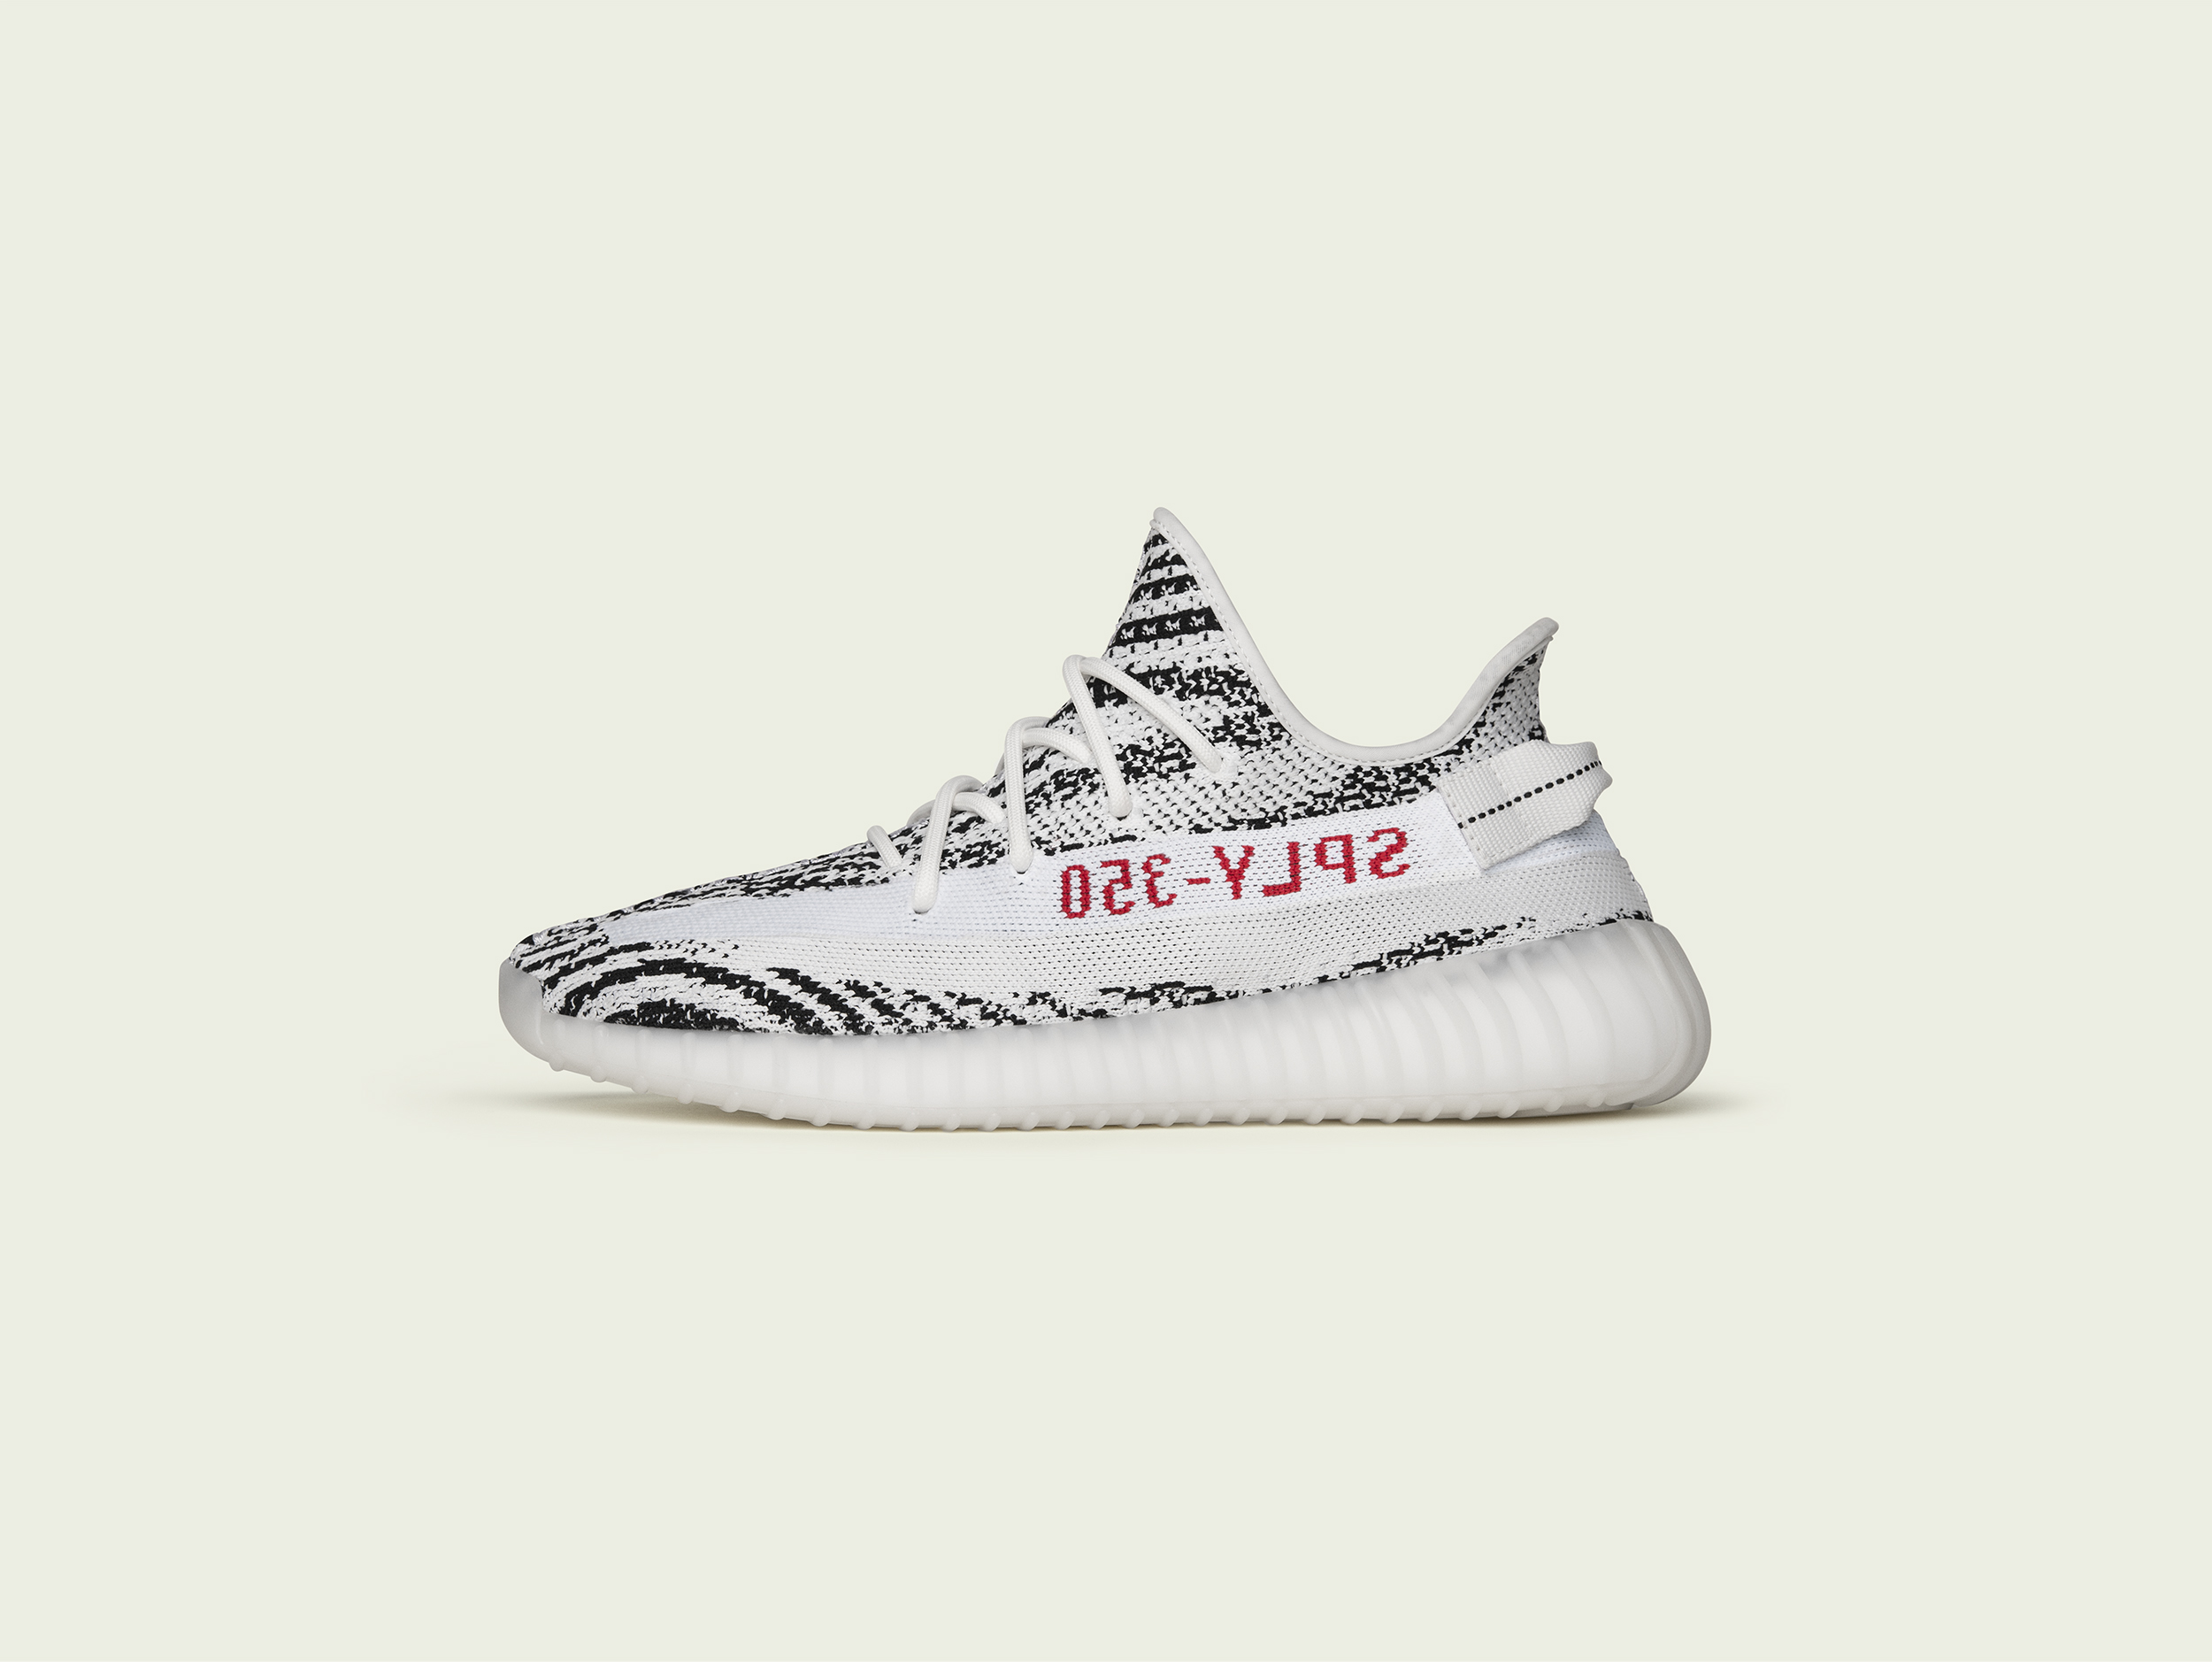 adidas_yeezy_boost_350_v2_cp9654_002